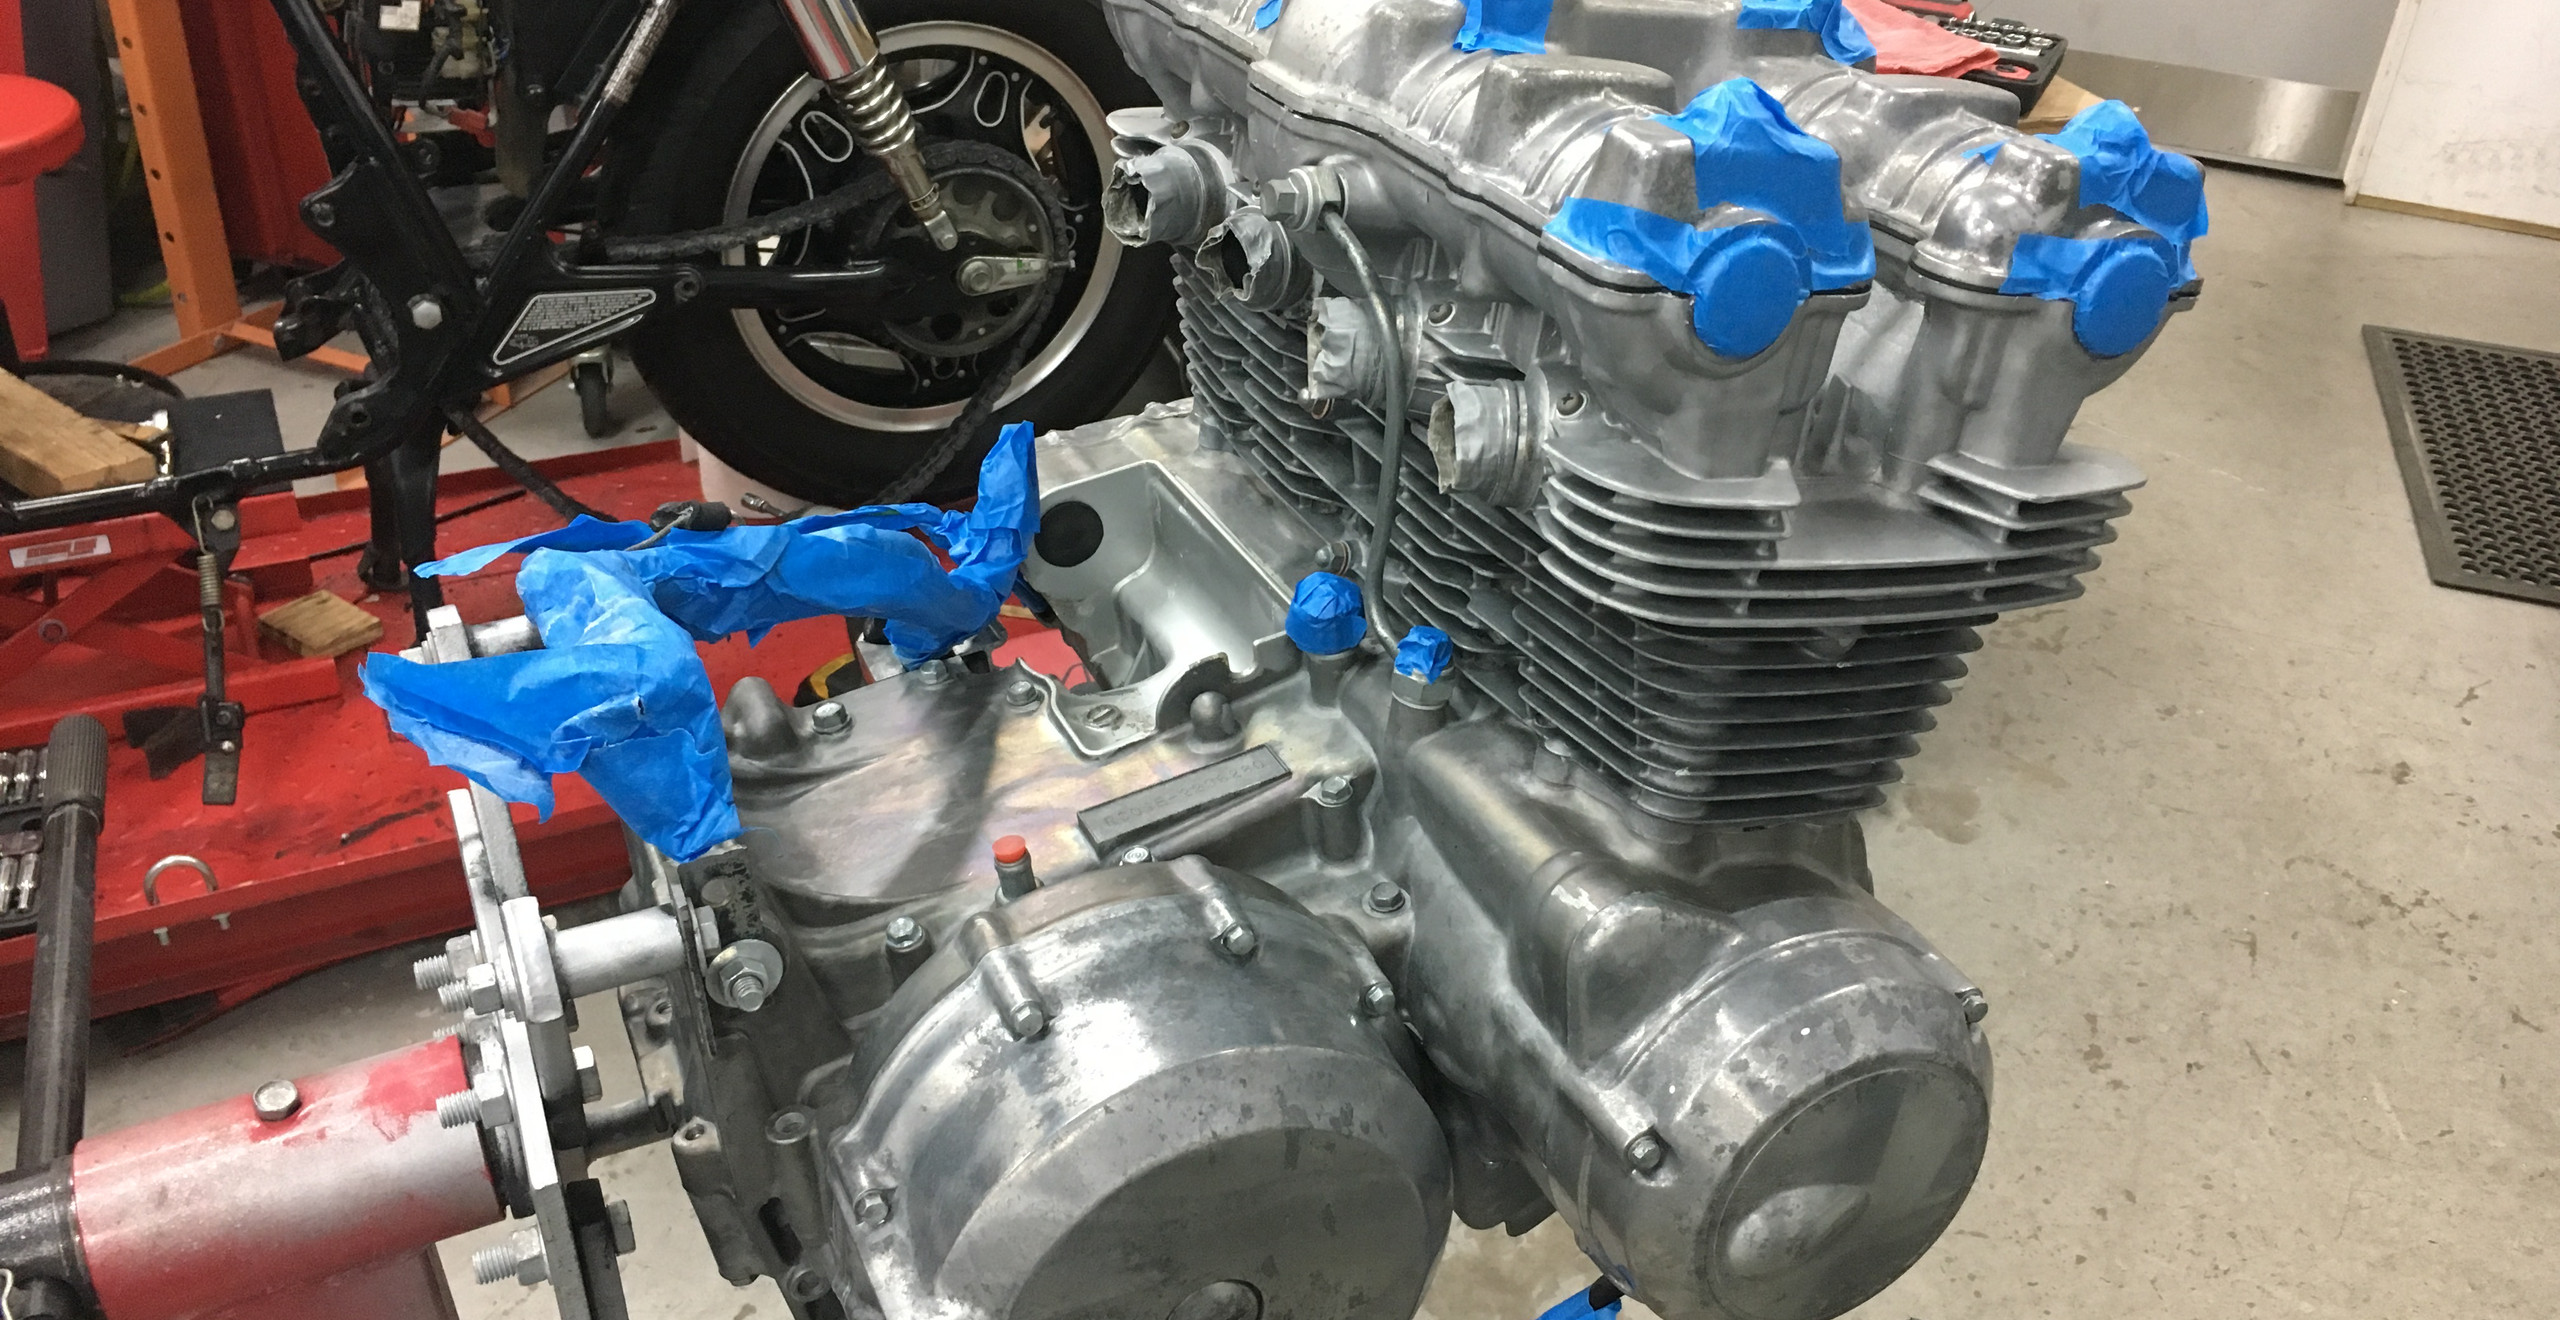 Now we're all cleaned up and rinsed off and degreased and we're masking before we paint and bake the engine.